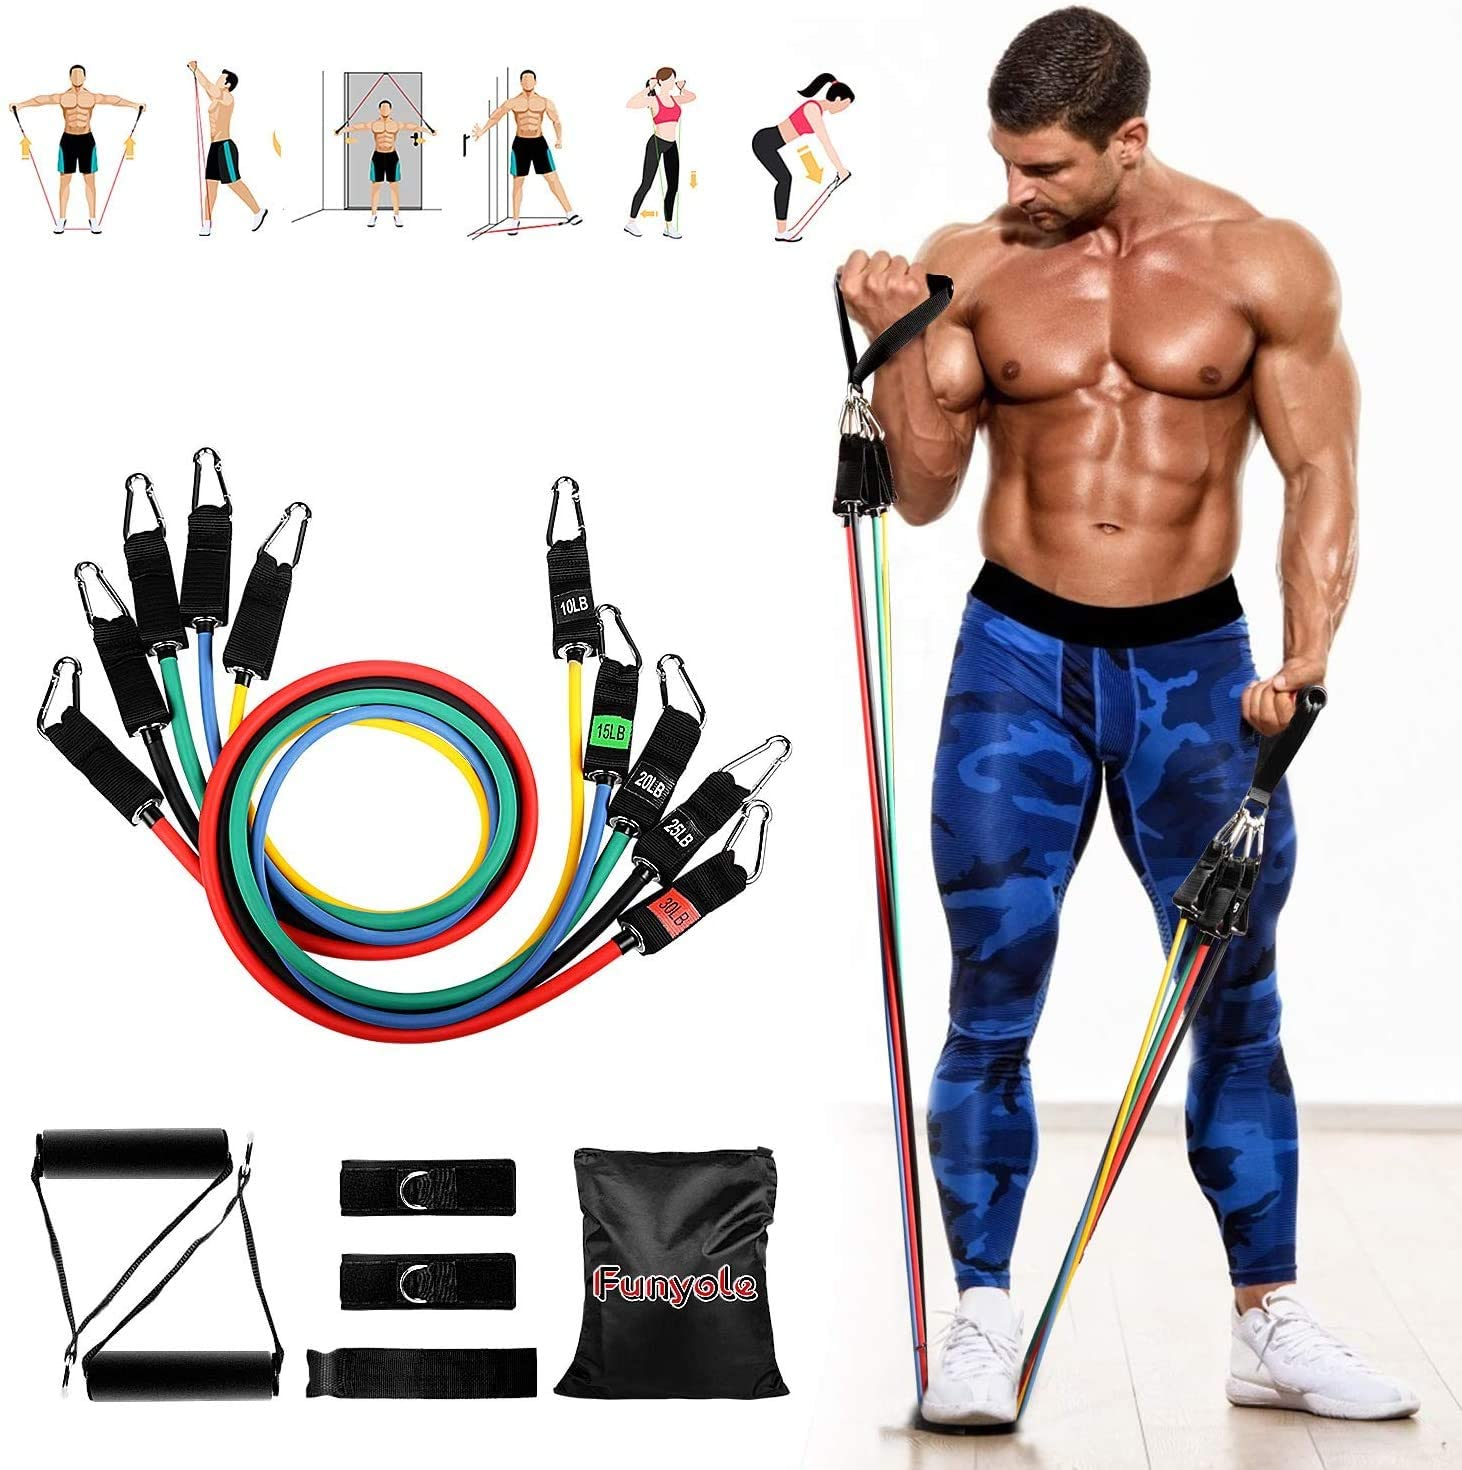 YF Funyole Resistance Bands Set, 11 Pack Exercise Bands Workout Resistance Bands with Handles, Door Anchor, Portable Bag, Leg Ankle Straps for Fitness Training, Physical Therapy, Home Workouts, Yoga